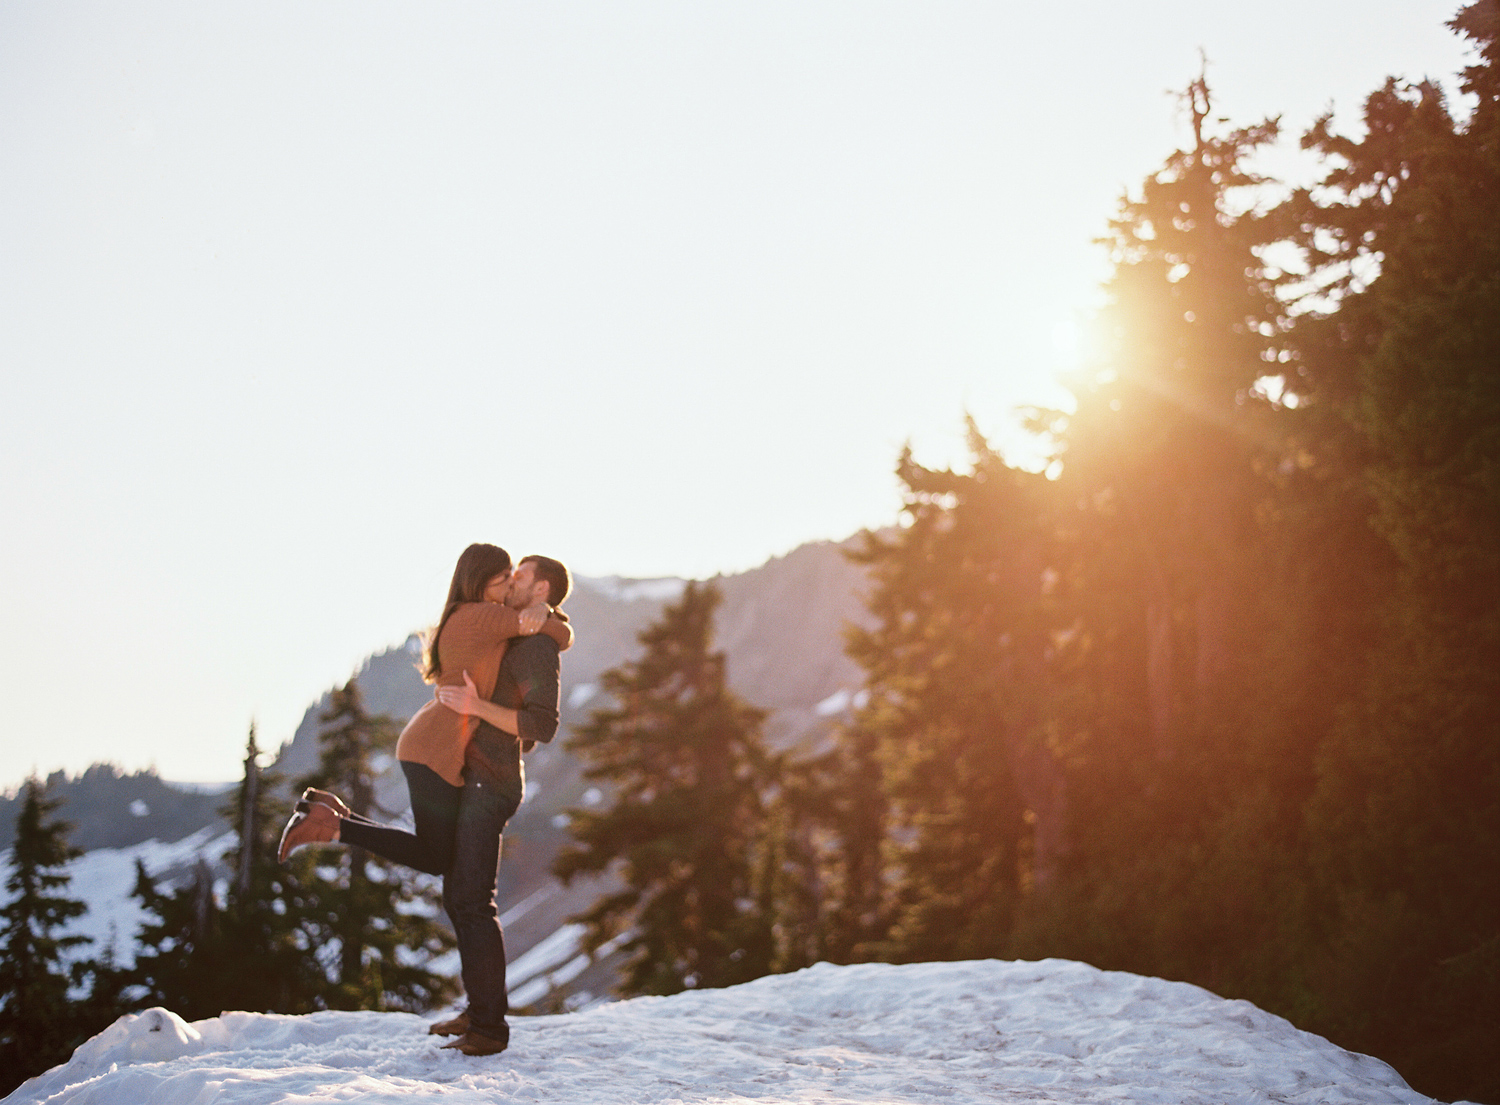 ryan-flynn-seattle-pnw-mountain-engagement-film-0019.JPG